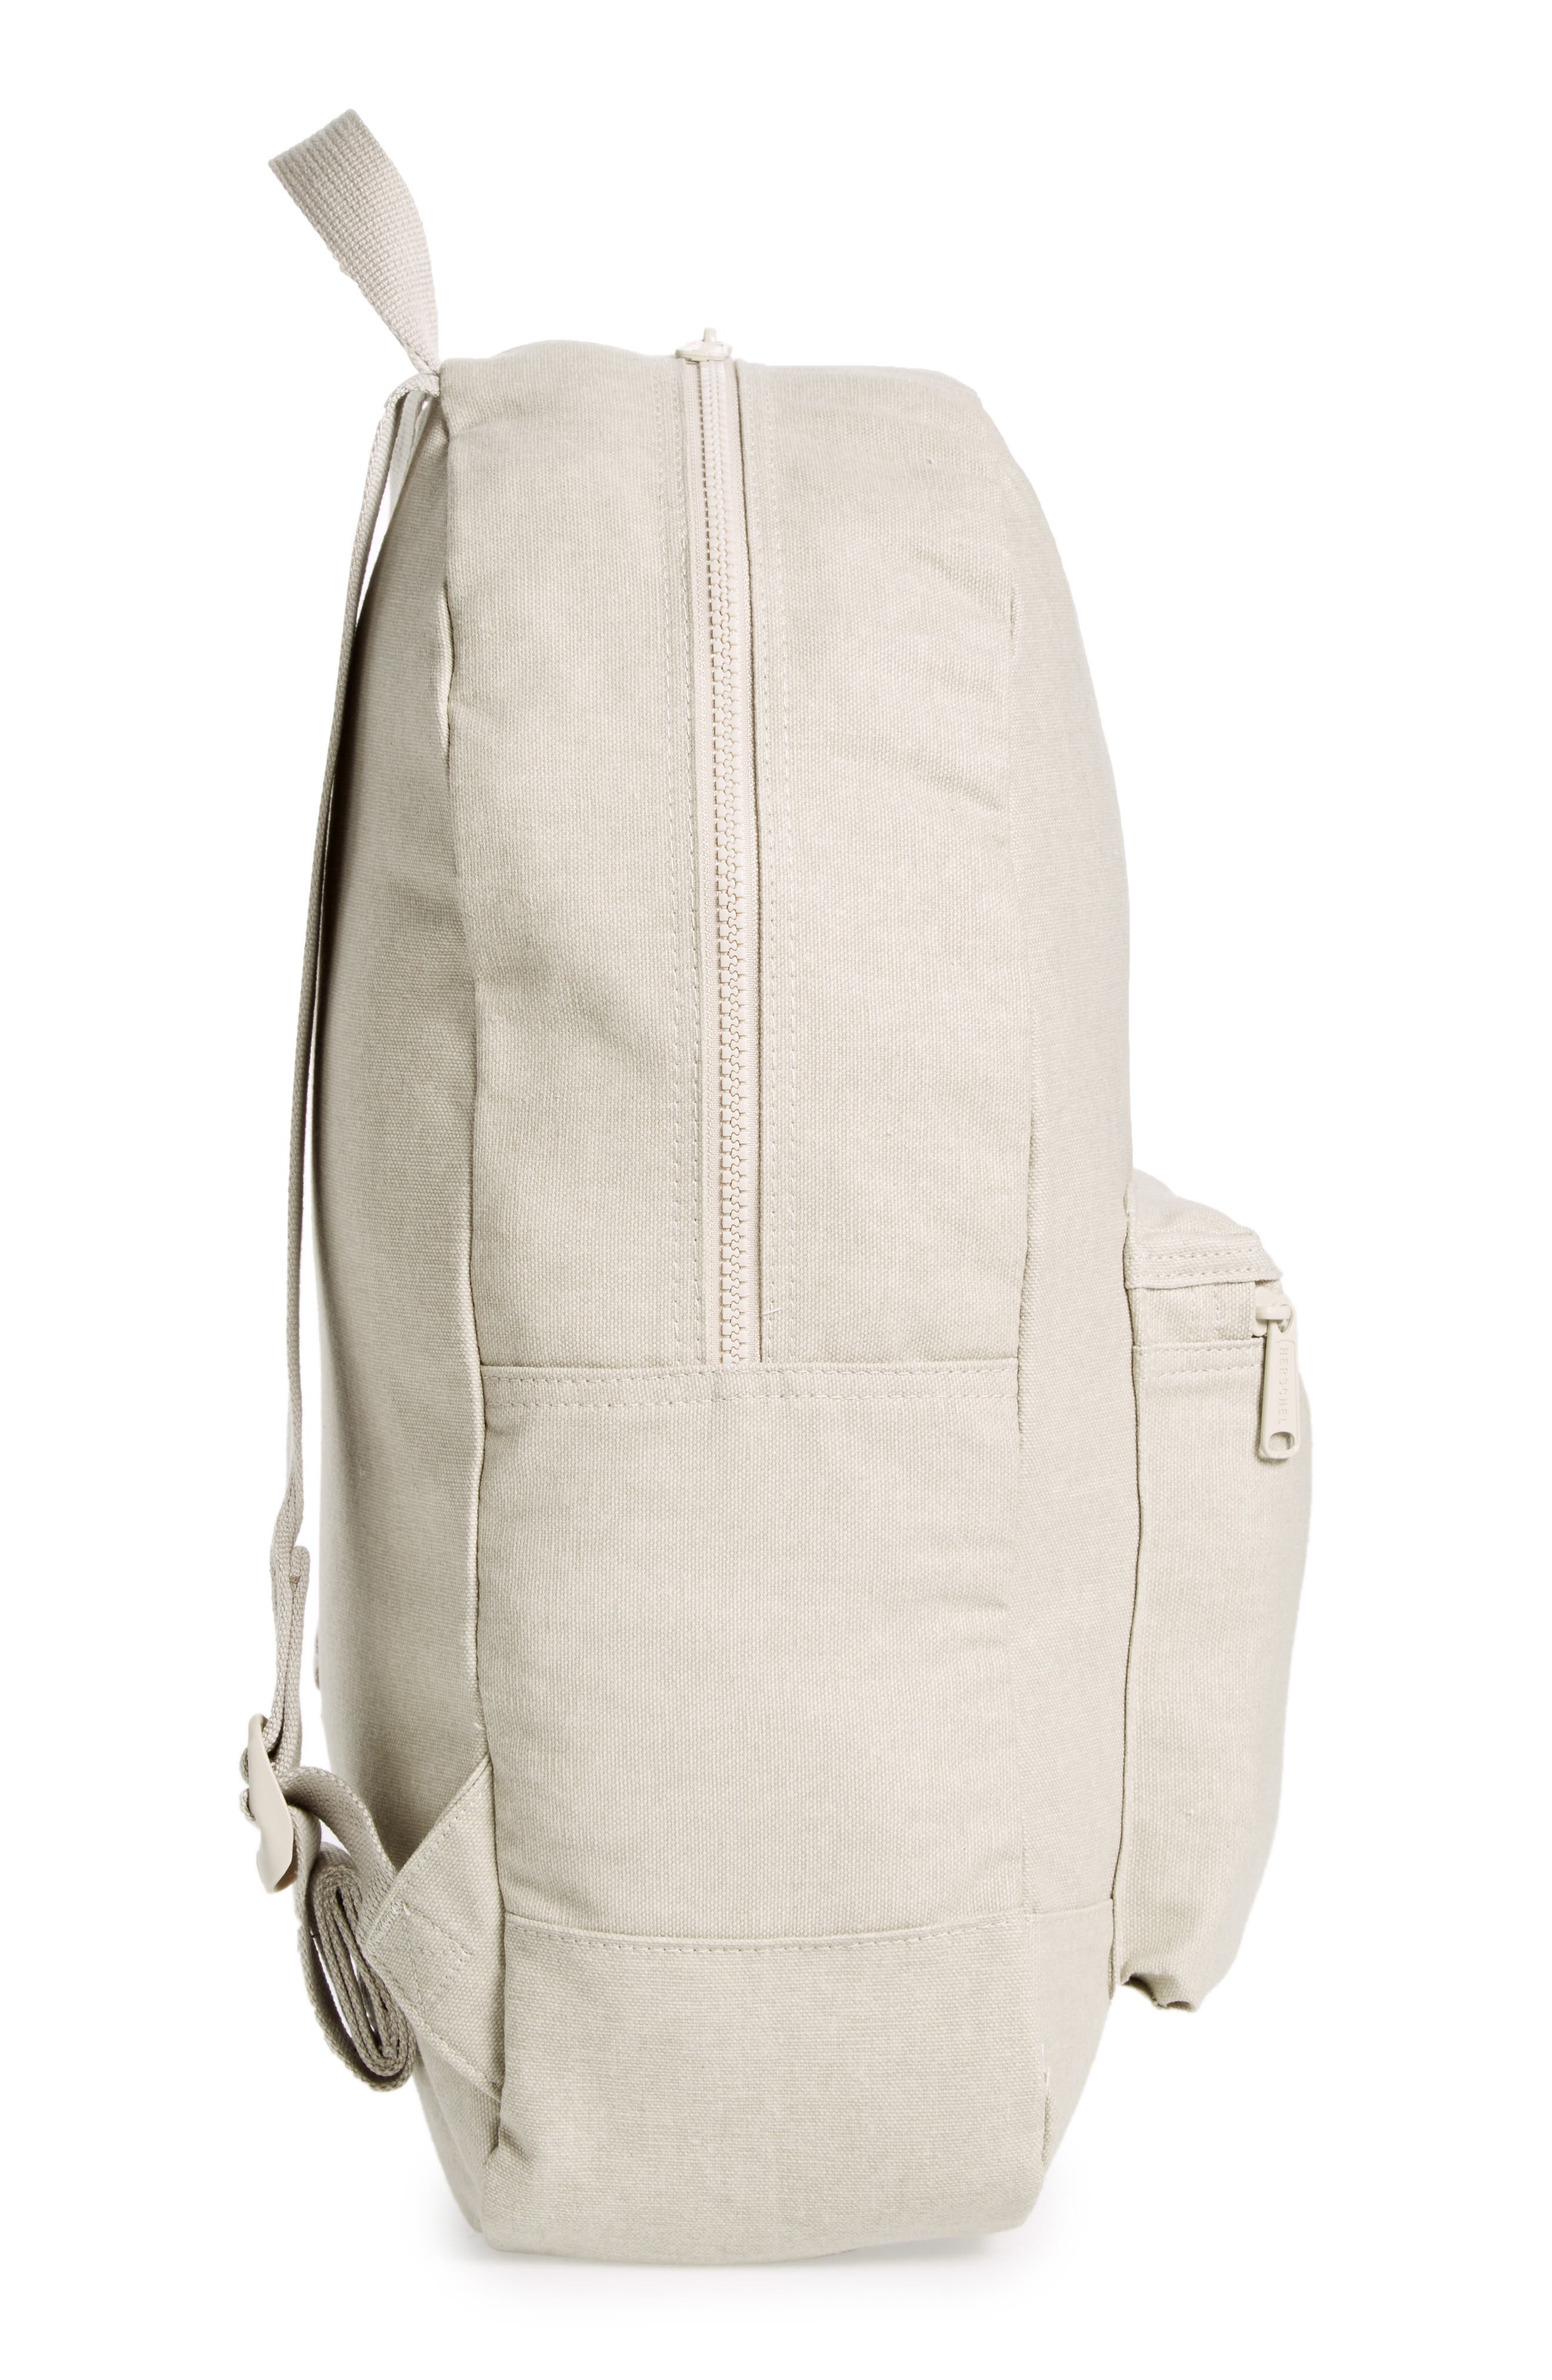 Cotton Casuals Daypack Backpack,                             Alternate thumbnail 42, color,